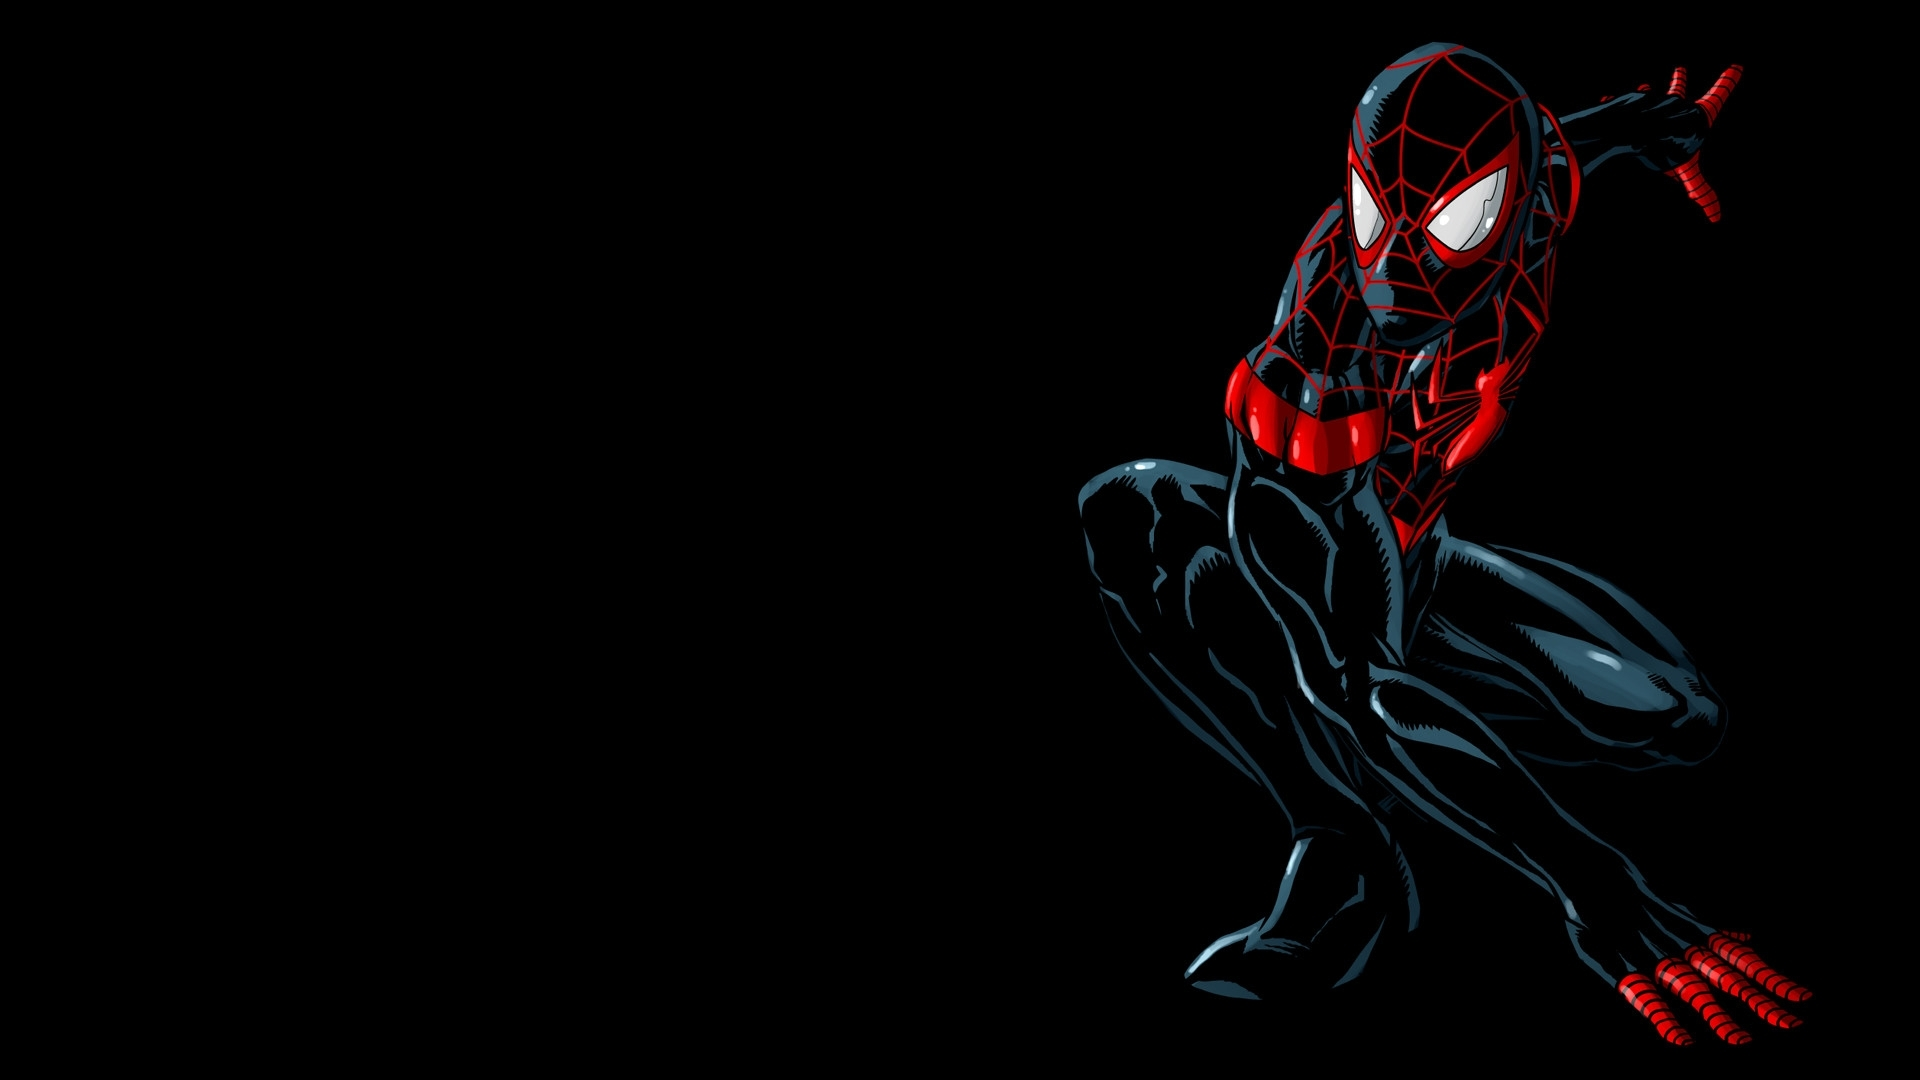 miles morales wallpaper3 - wallpaperheat